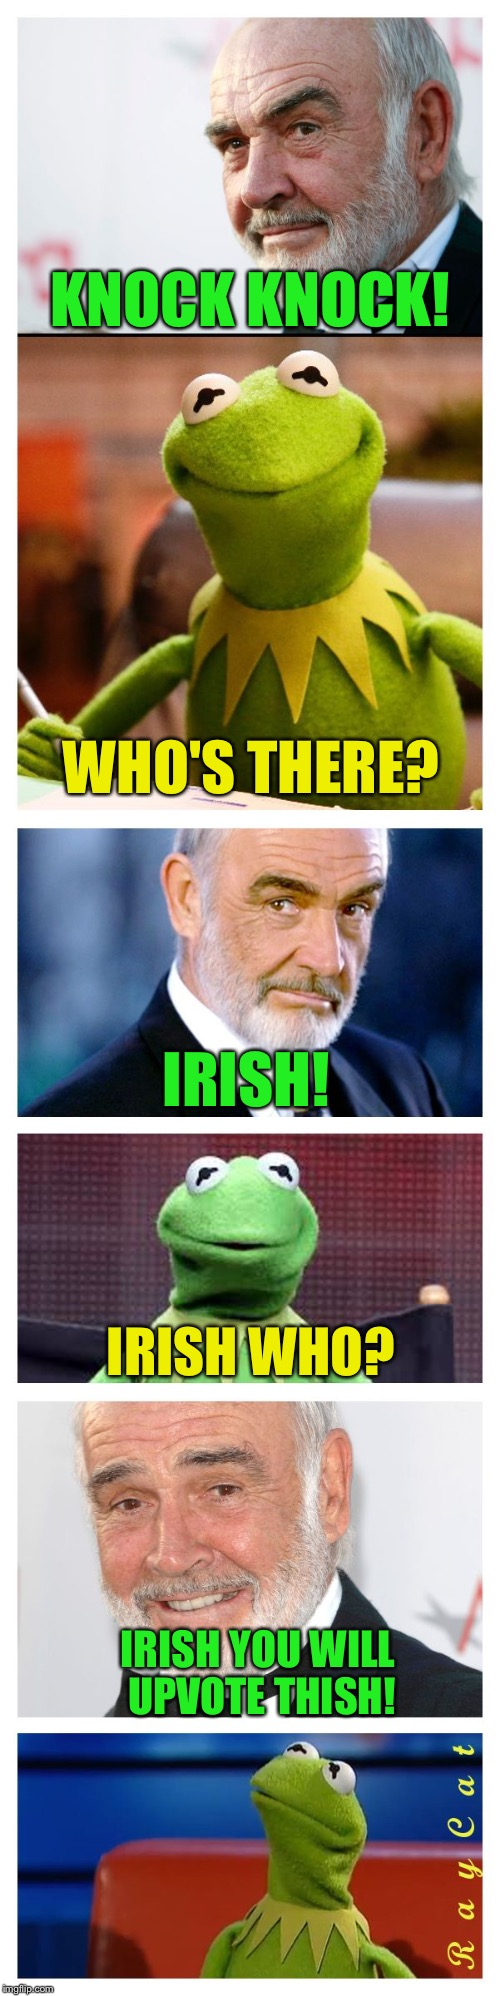 Knock Knock | KNOCK KNOCK! WHO'S THERE? IRISH! IRISH WHO? IRISH YOU WILL UPVOTE THISH! | image tagged in sean and kermit,memes,knock knock,sean connery  kermit | made w/ Imgflip meme maker